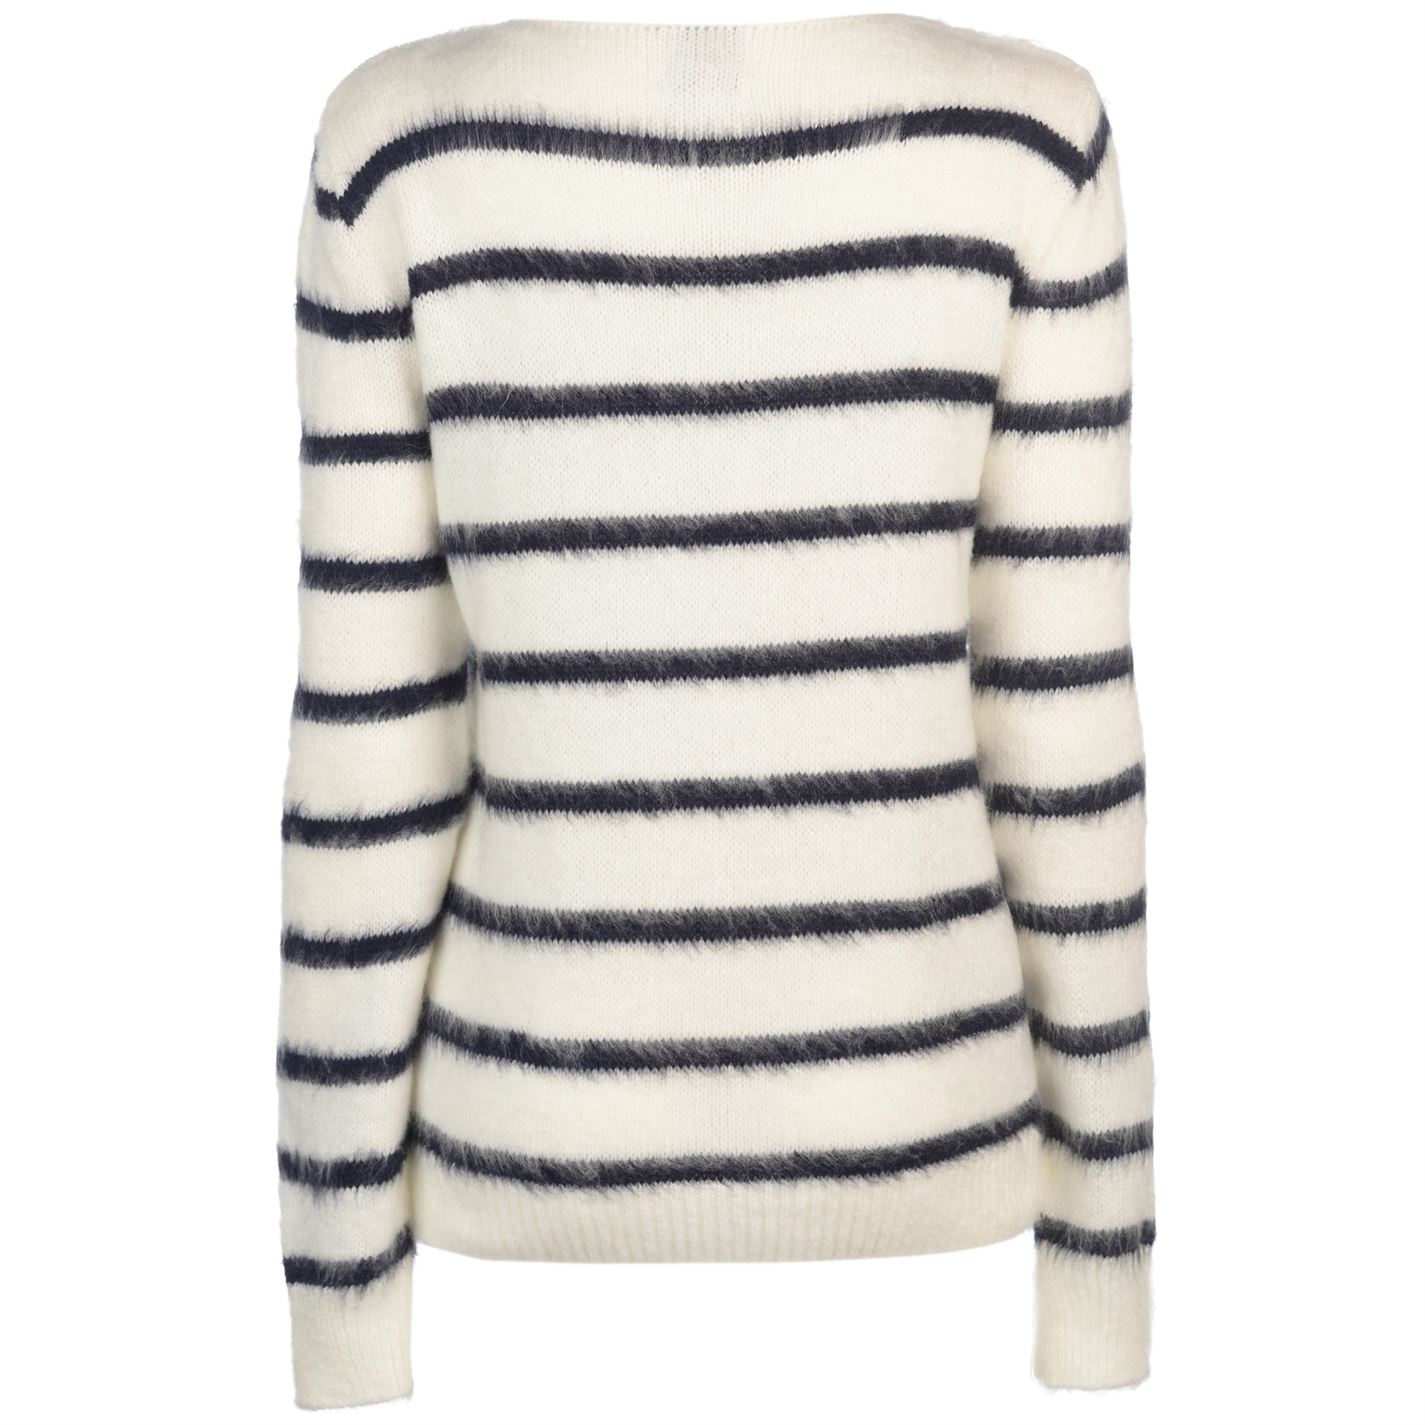 8a6e976ca1d Womens SoulCal Deluxe Brush Stripe Knitted Jumper Long Sleeve New